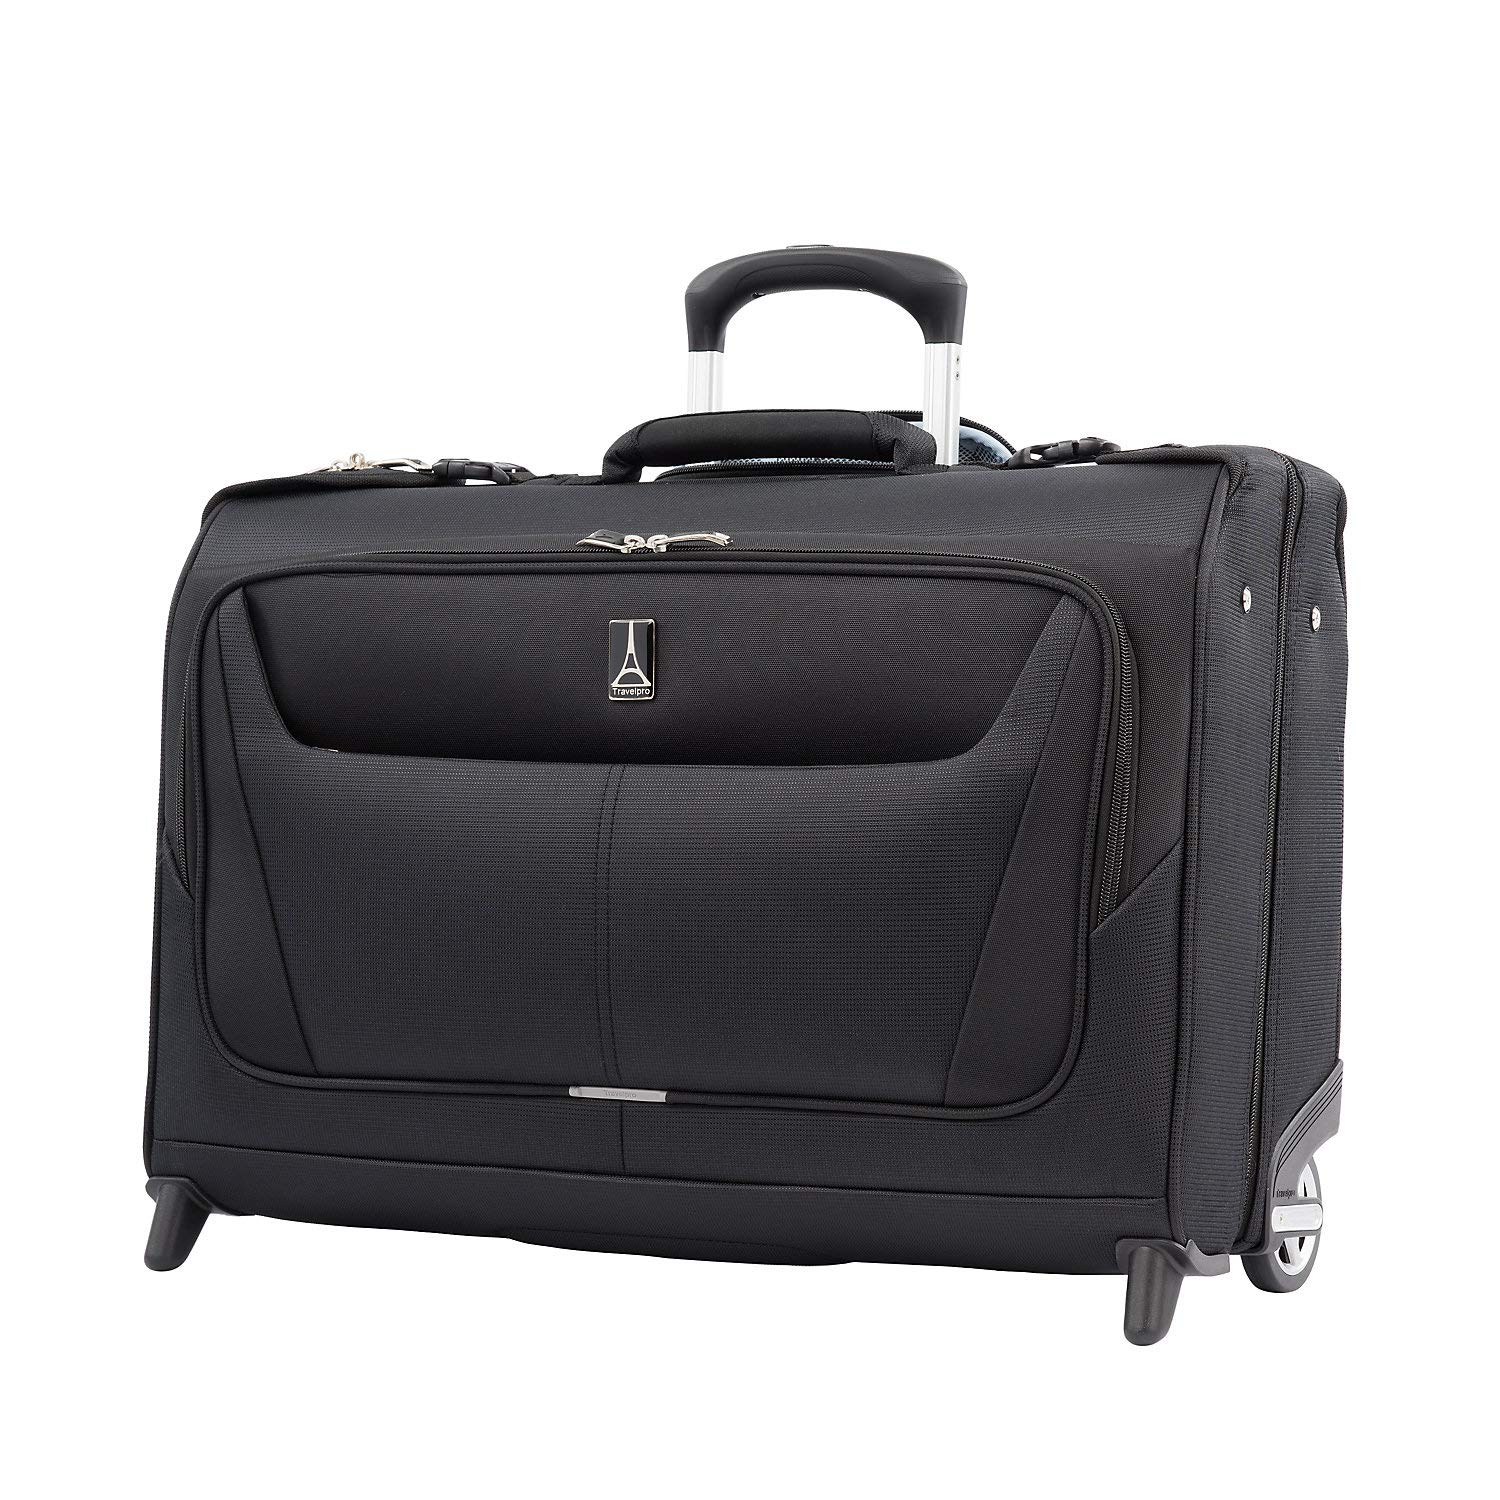 Top 5 Best Cheap Garment Bags for Travel and Business Trips In 2019 Reviews and Benefits